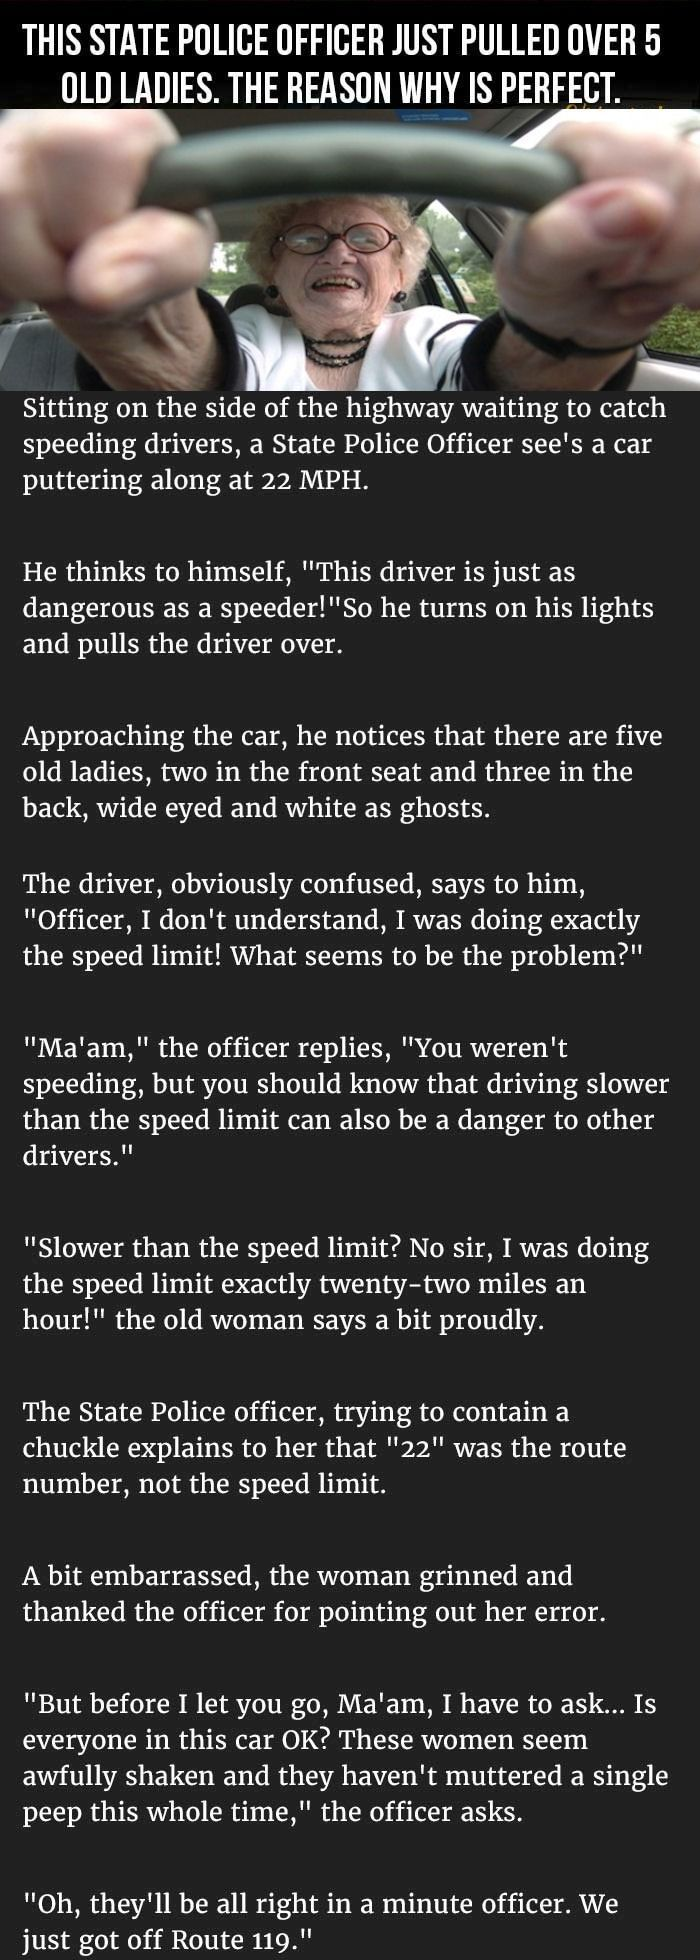 This State Officer Pulled Over 5 Old Ladies The Reason Why Is Perfect Pictures, Photos, and Images for Facebook, Tumblr, Pinterest, and Twitter